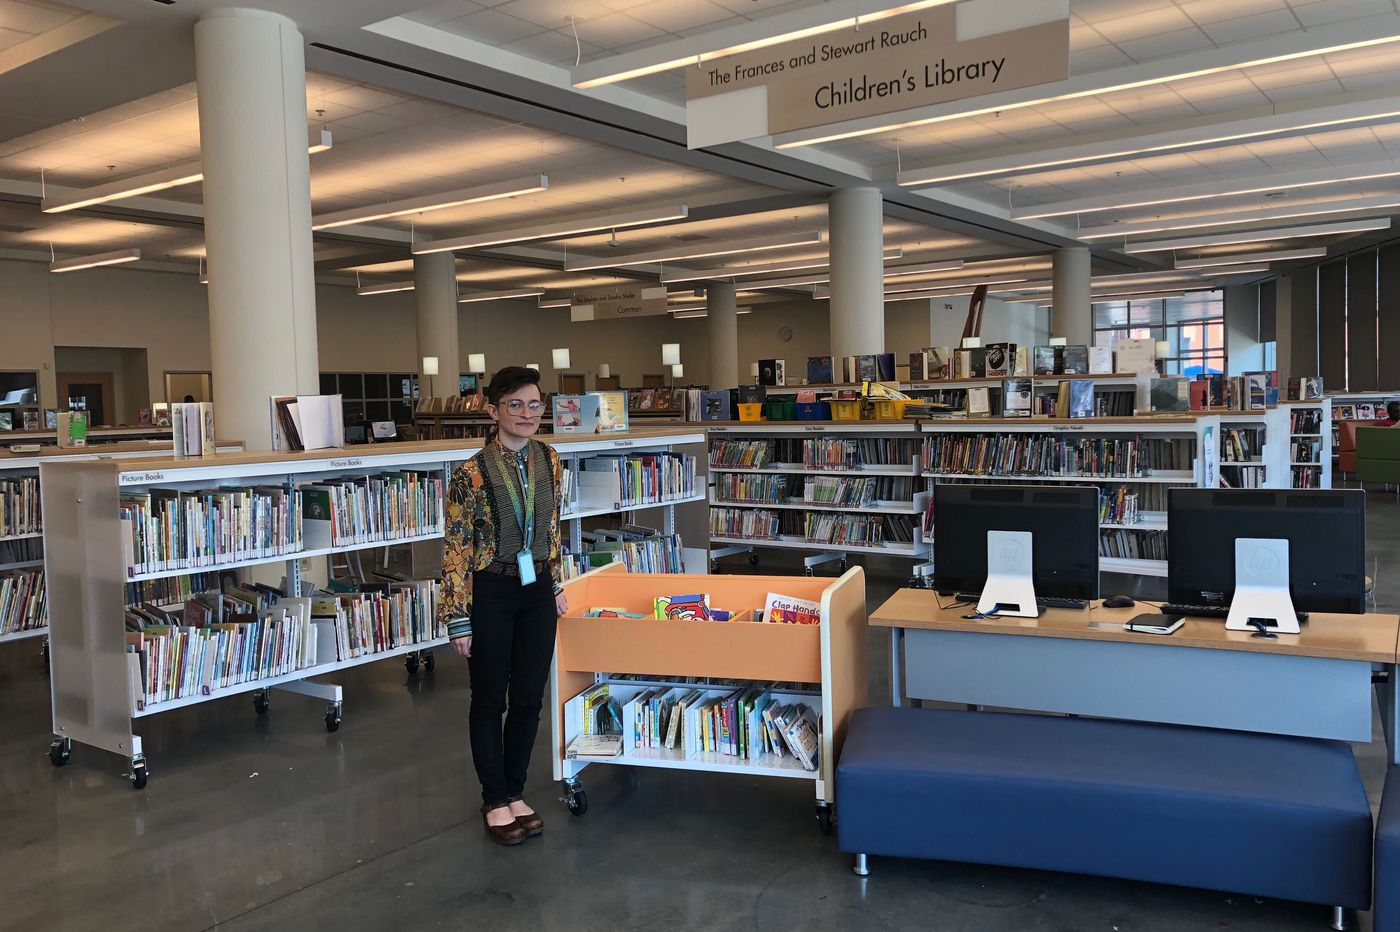 Eliminating overdue library fines is a fine idea | Editorial